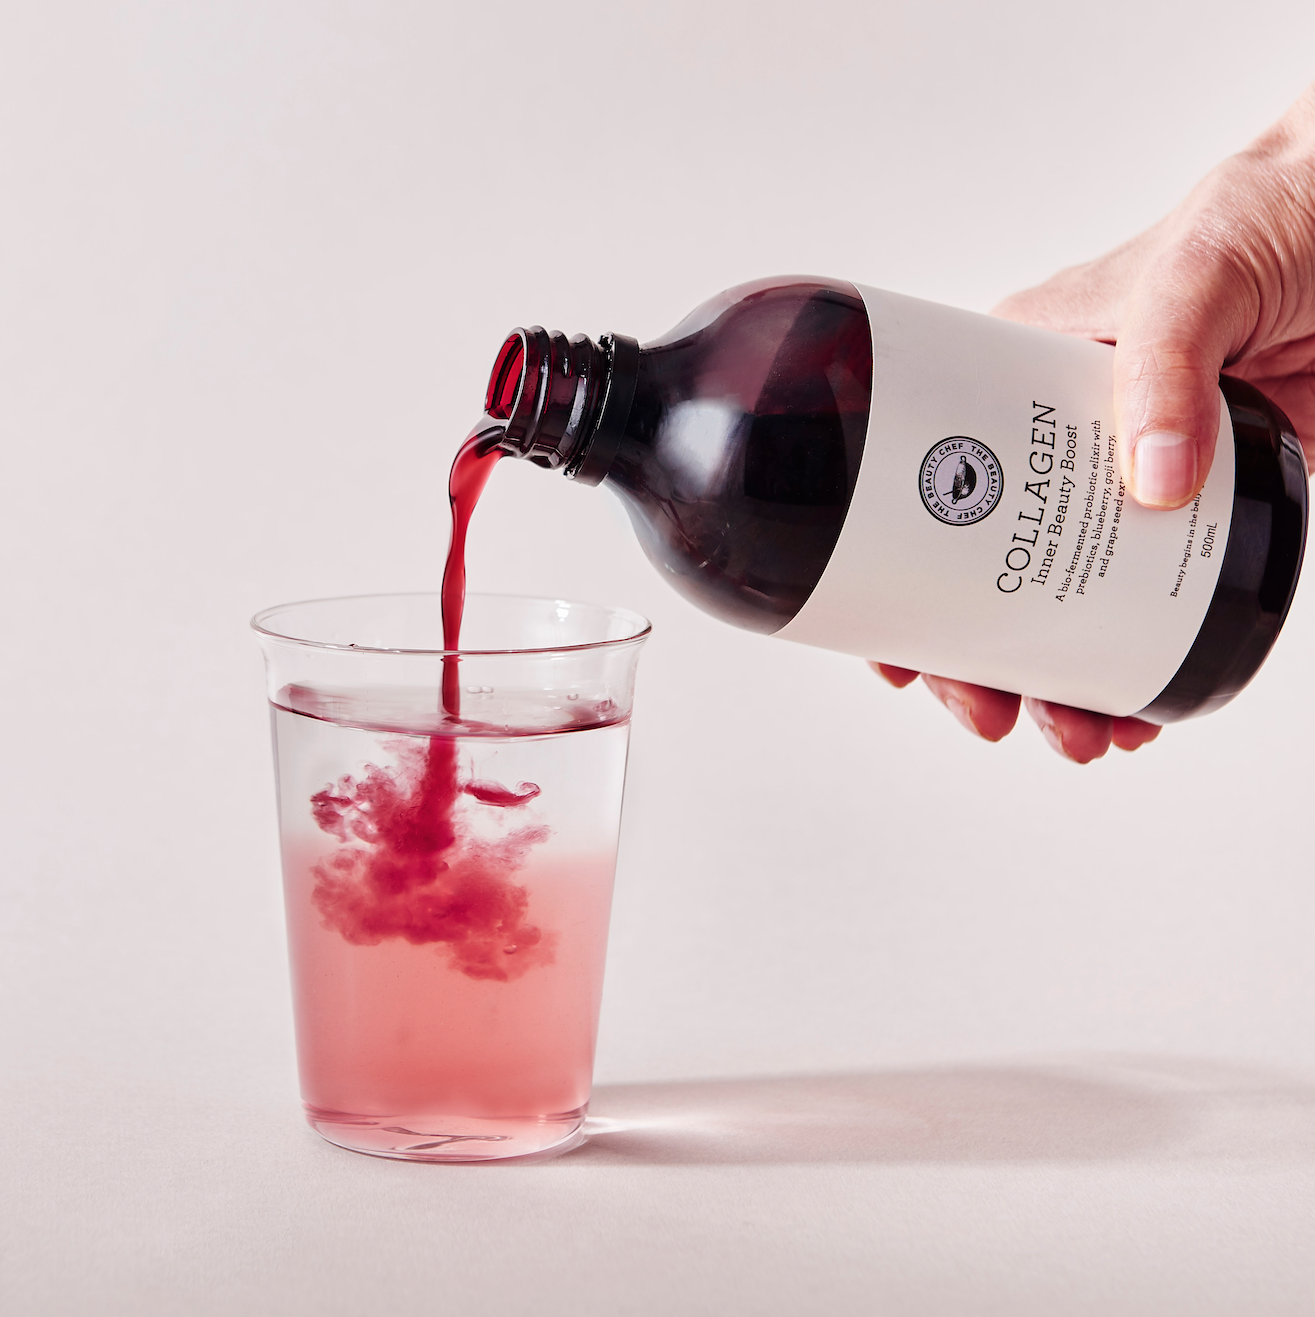 a hand pouring from a bottle into a glass